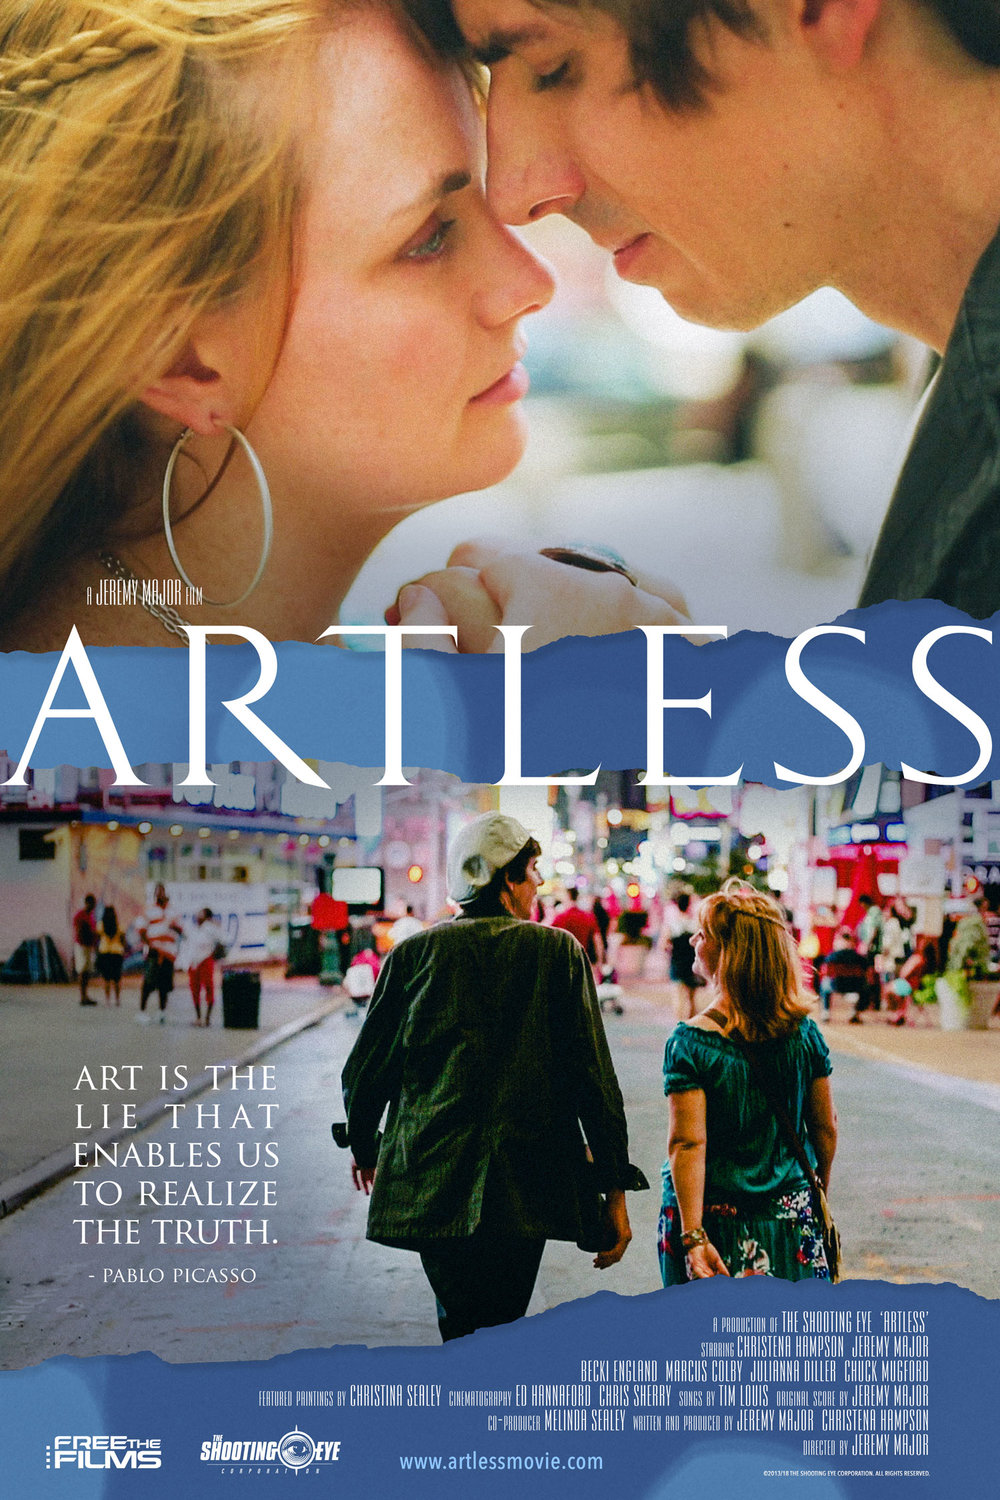 Artless---New-Poster-2018-for-web.jpg